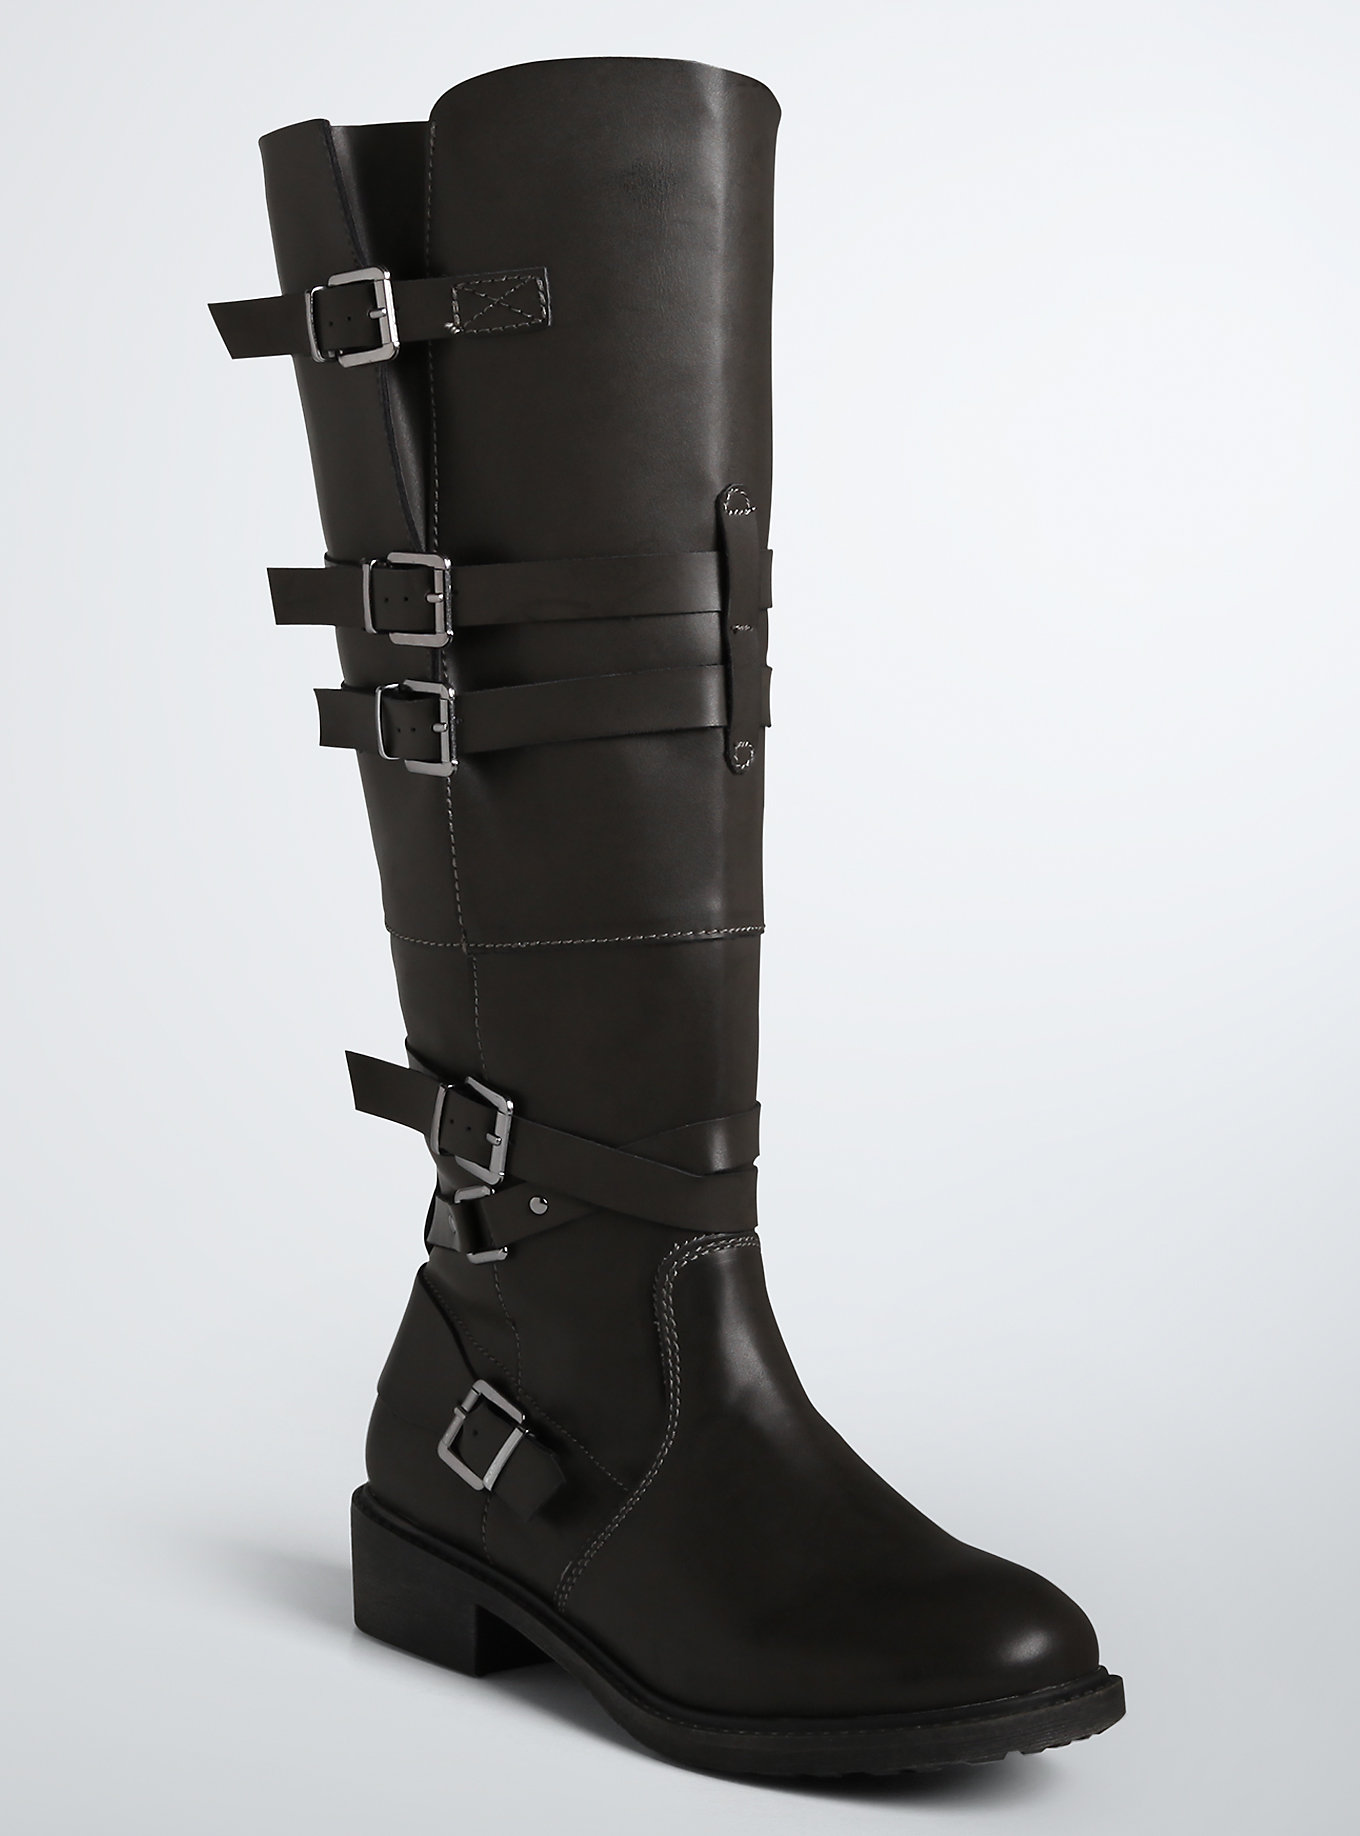 If you are a size 11-13, Torrid's boots go up to a size 21 inches on the calf.